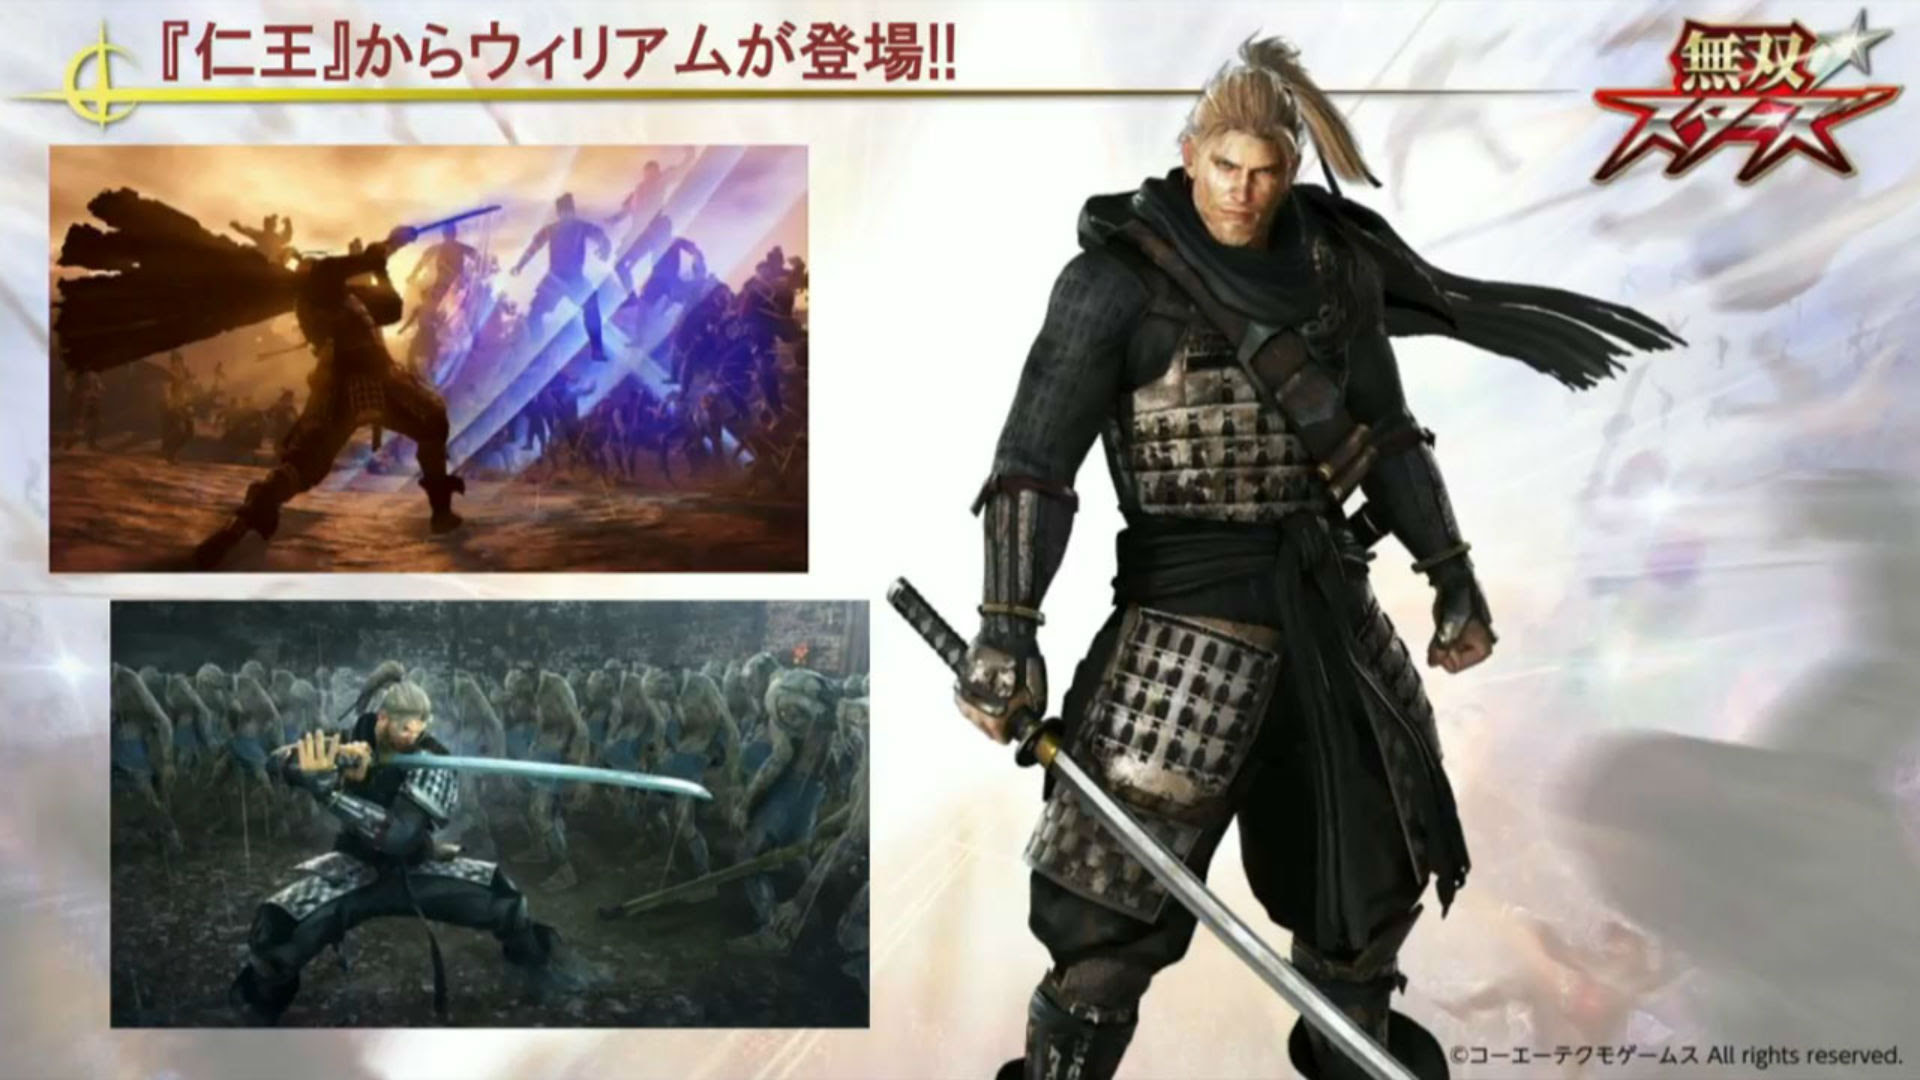 Nioh's William joins the cast of Musou Stars screenshot